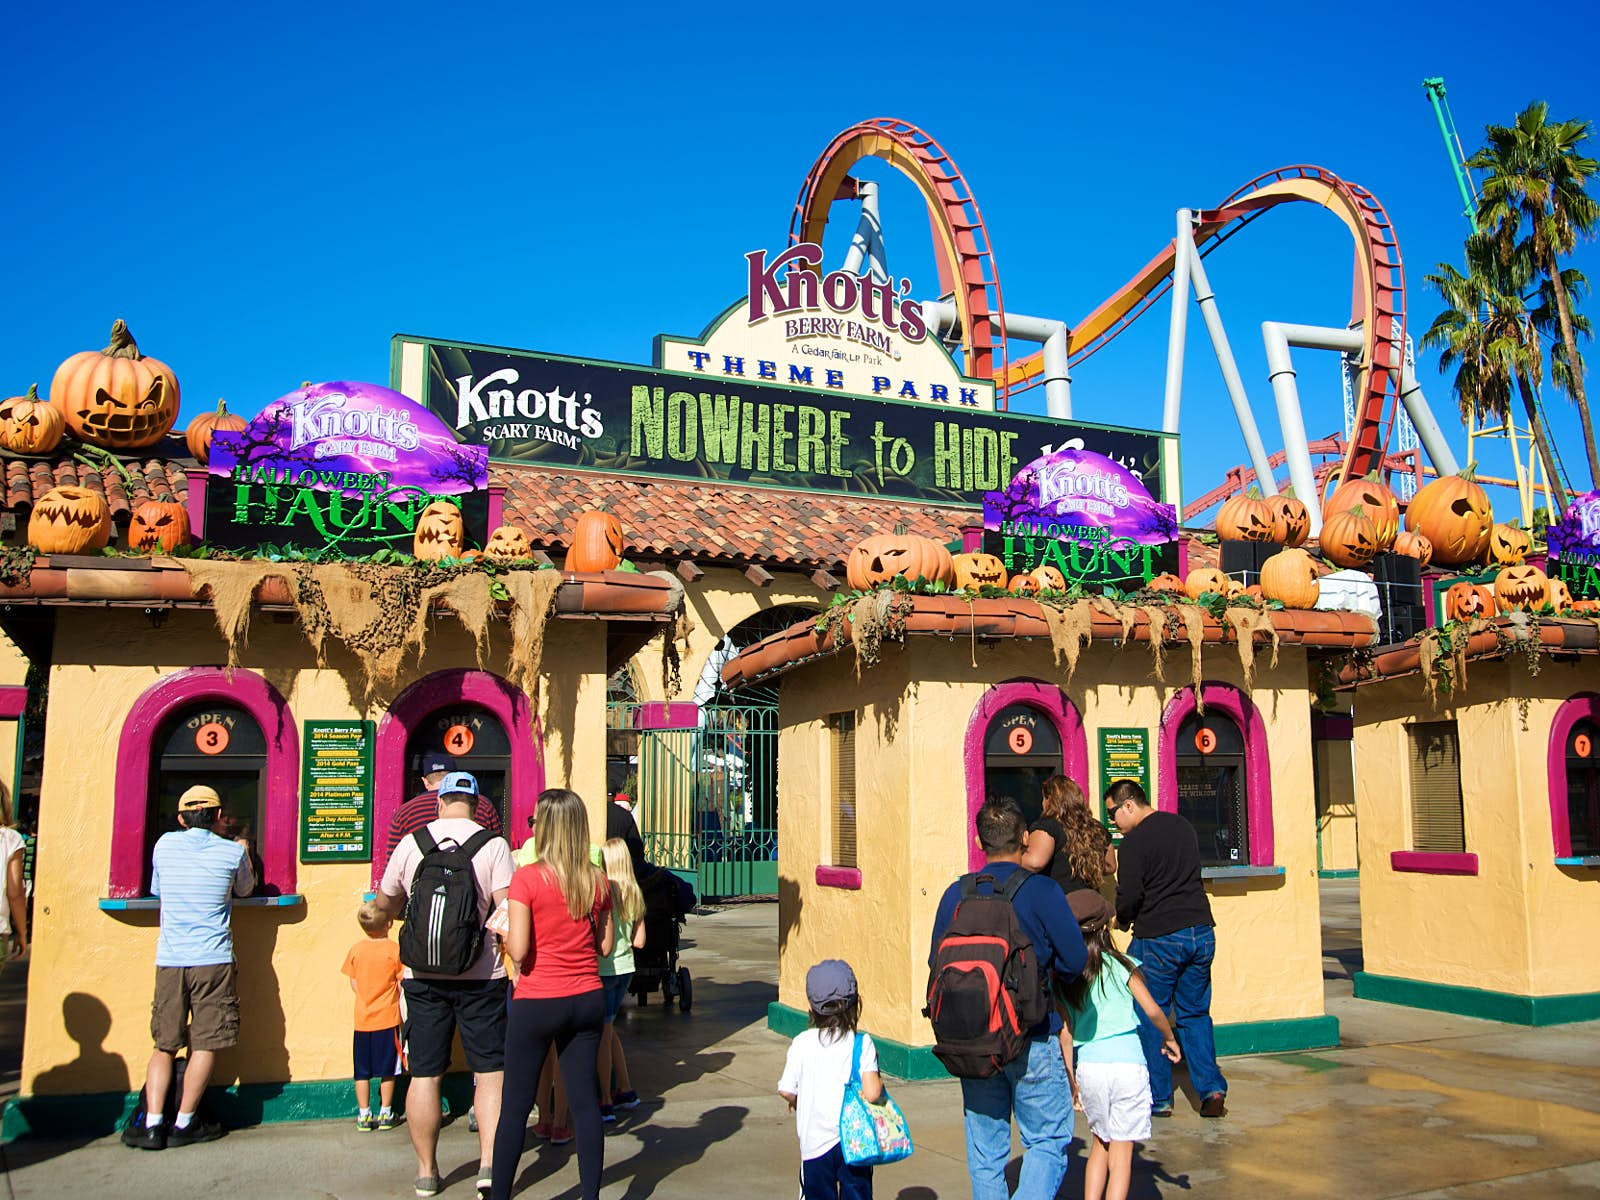 Disney alternatives - Knotts Berry Farm decked out for Halloween with pumpkins engulfing the entrance gates